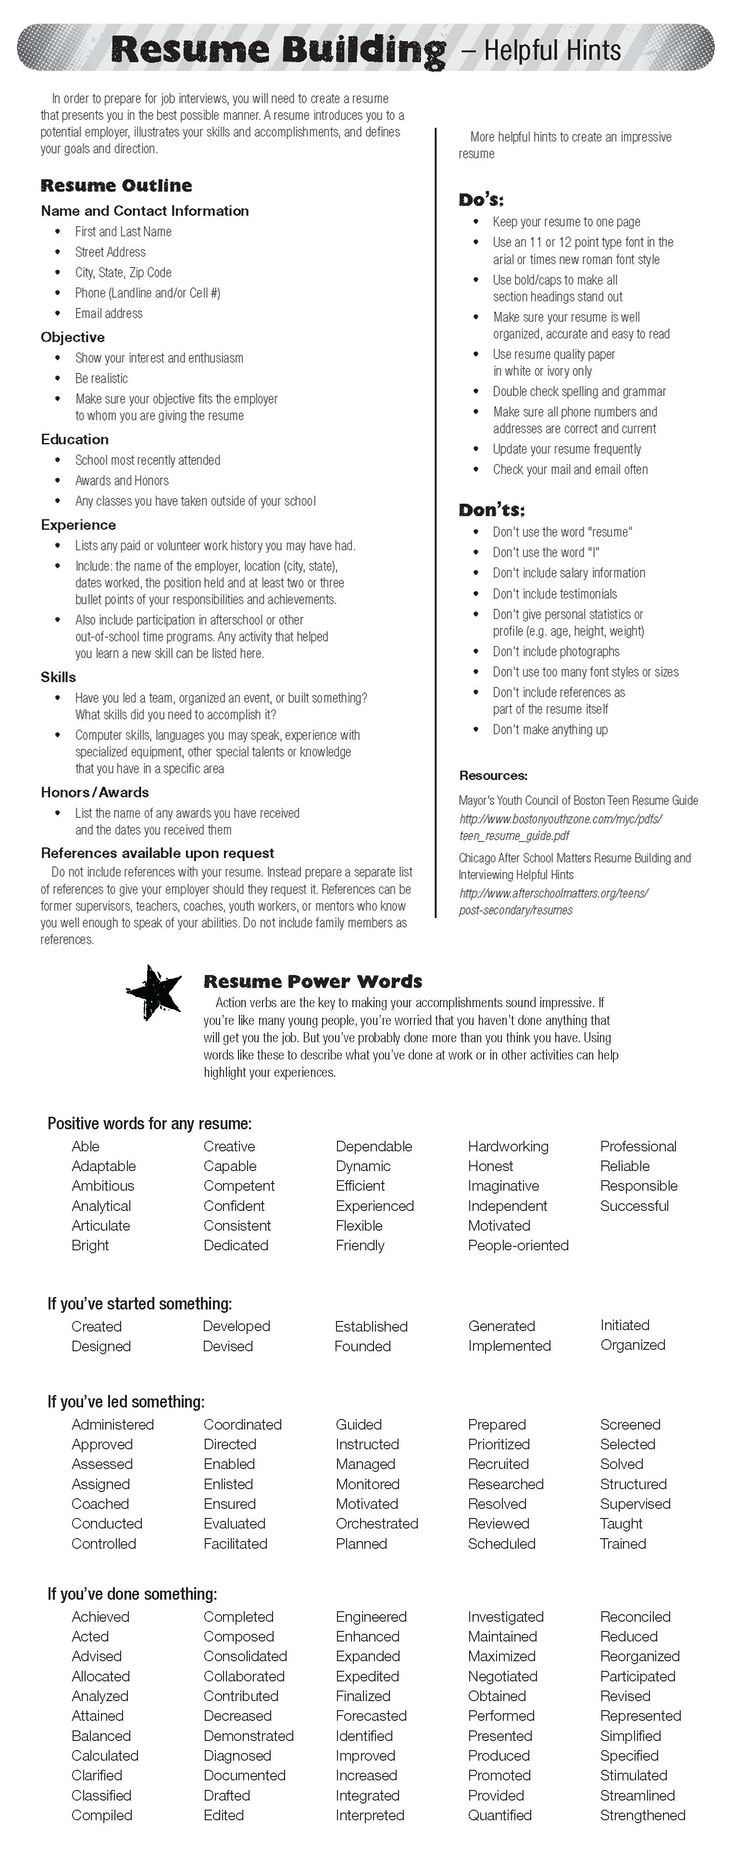 Opposenewapstandardsus  Splendid  Ideas About Resume On Pinterest  Cv Format Resume Cv And  With Magnificent  Ideas About Resume On Pinterest  Cv Format Resume Cv And Resume Templates With Divine Military Experience Resume Also Administrative Resumes In Addition Waitress Resume Description And Microsoft Office Resume Templates  As Well As Ms Office Resume Templates Additionally How To Make An Awesome Resume From Pinterestcom With Opposenewapstandardsus  Magnificent  Ideas About Resume On Pinterest  Cv Format Resume Cv And  With Divine  Ideas About Resume On Pinterest  Cv Format Resume Cv And Resume Templates And Splendid Military Experience Resume Also Administrative Resumes In Addition Waitress Resume Description From Pinterestcom